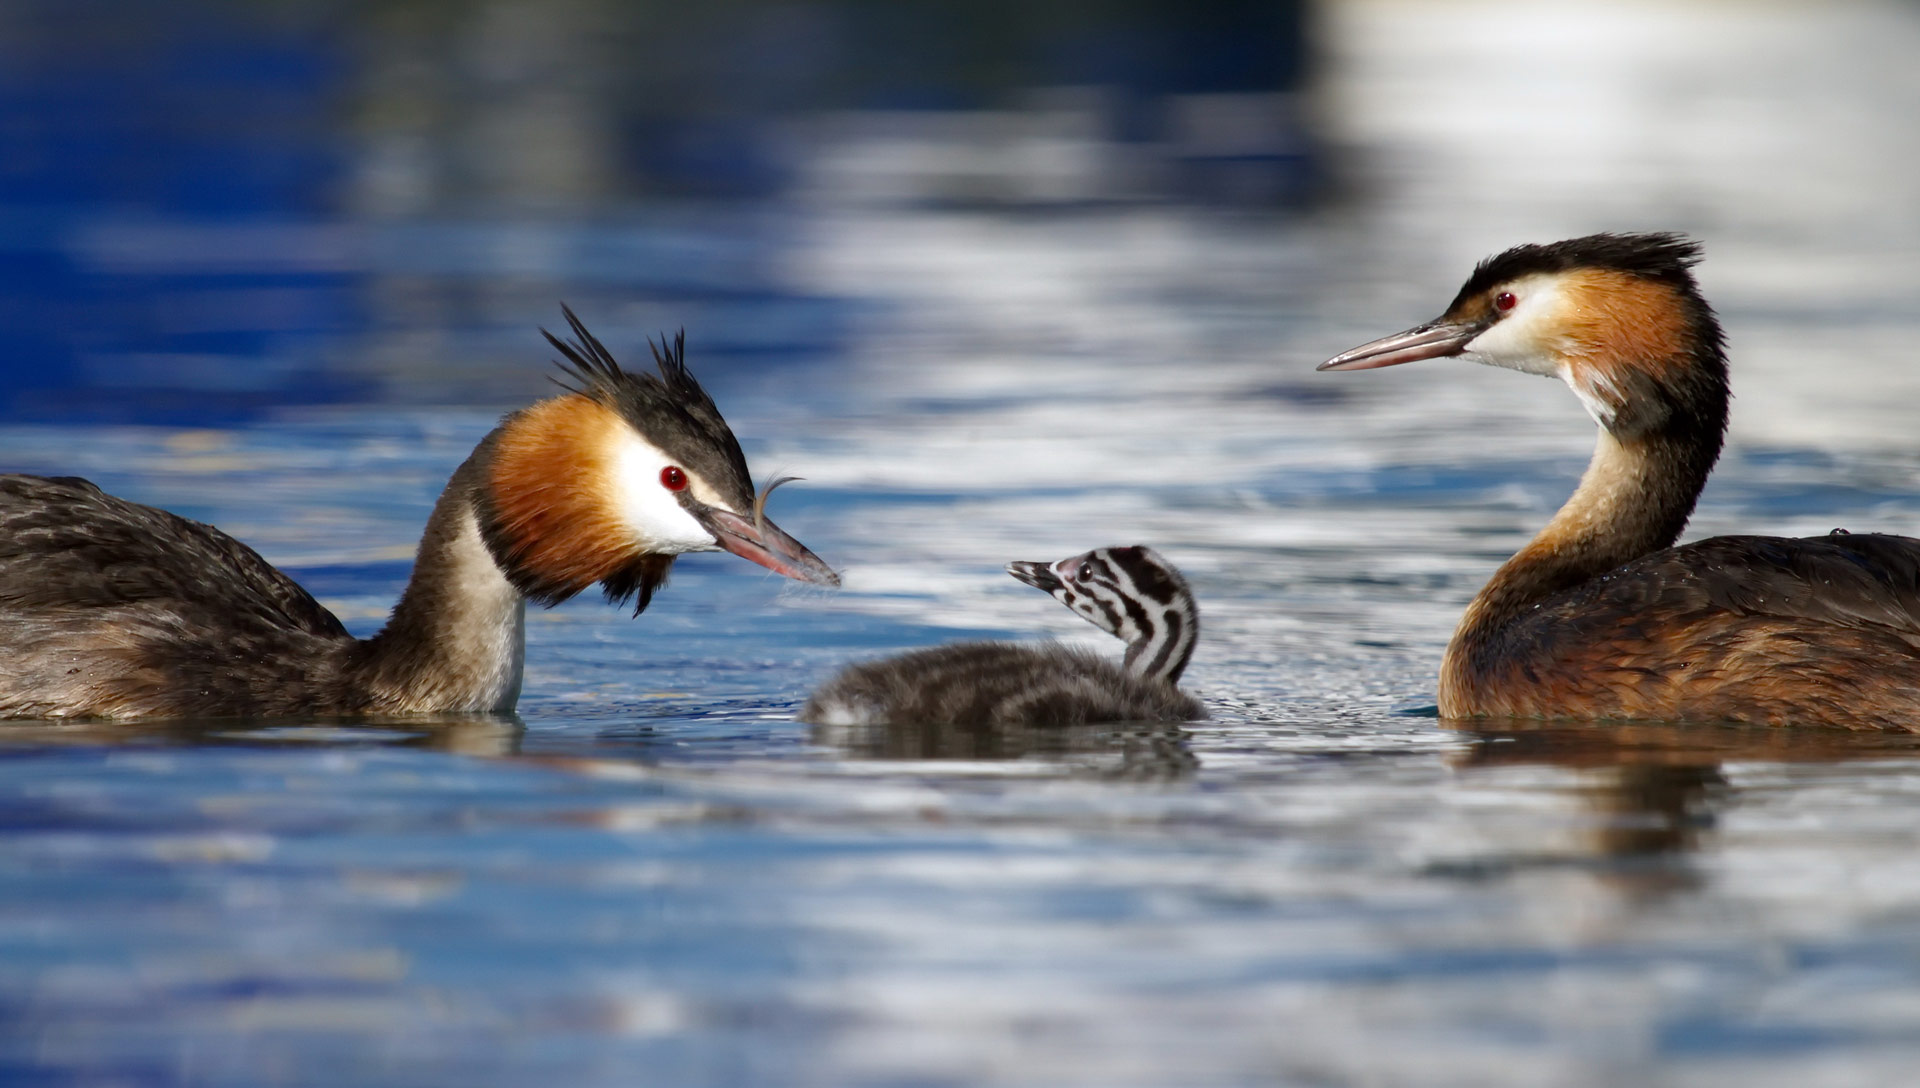 Crested grebe ducks, podiceps cristatus, parents and baby floating on water lake